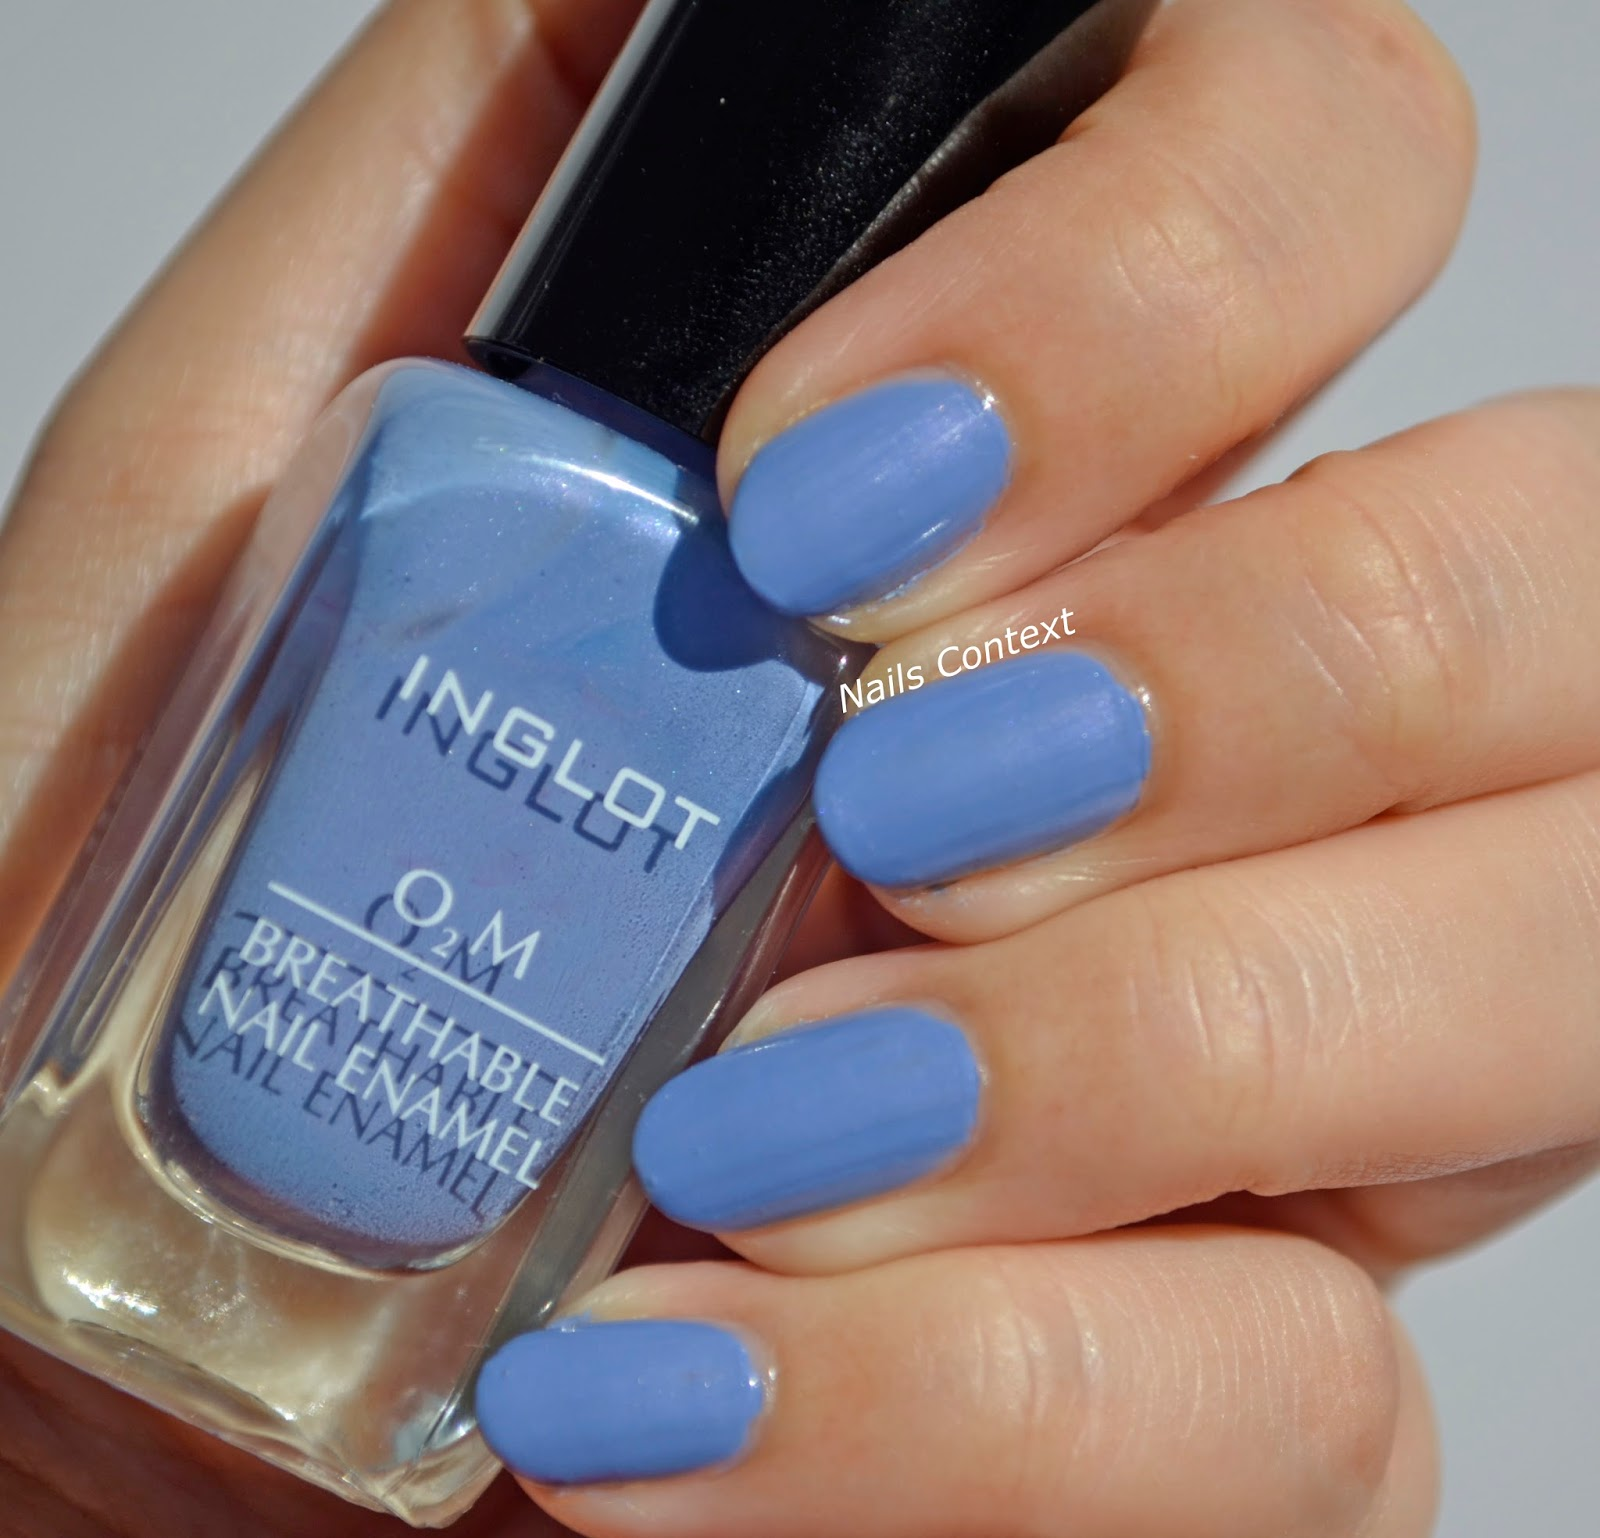 Nails Context: Inglot Breathable Nail Enamel